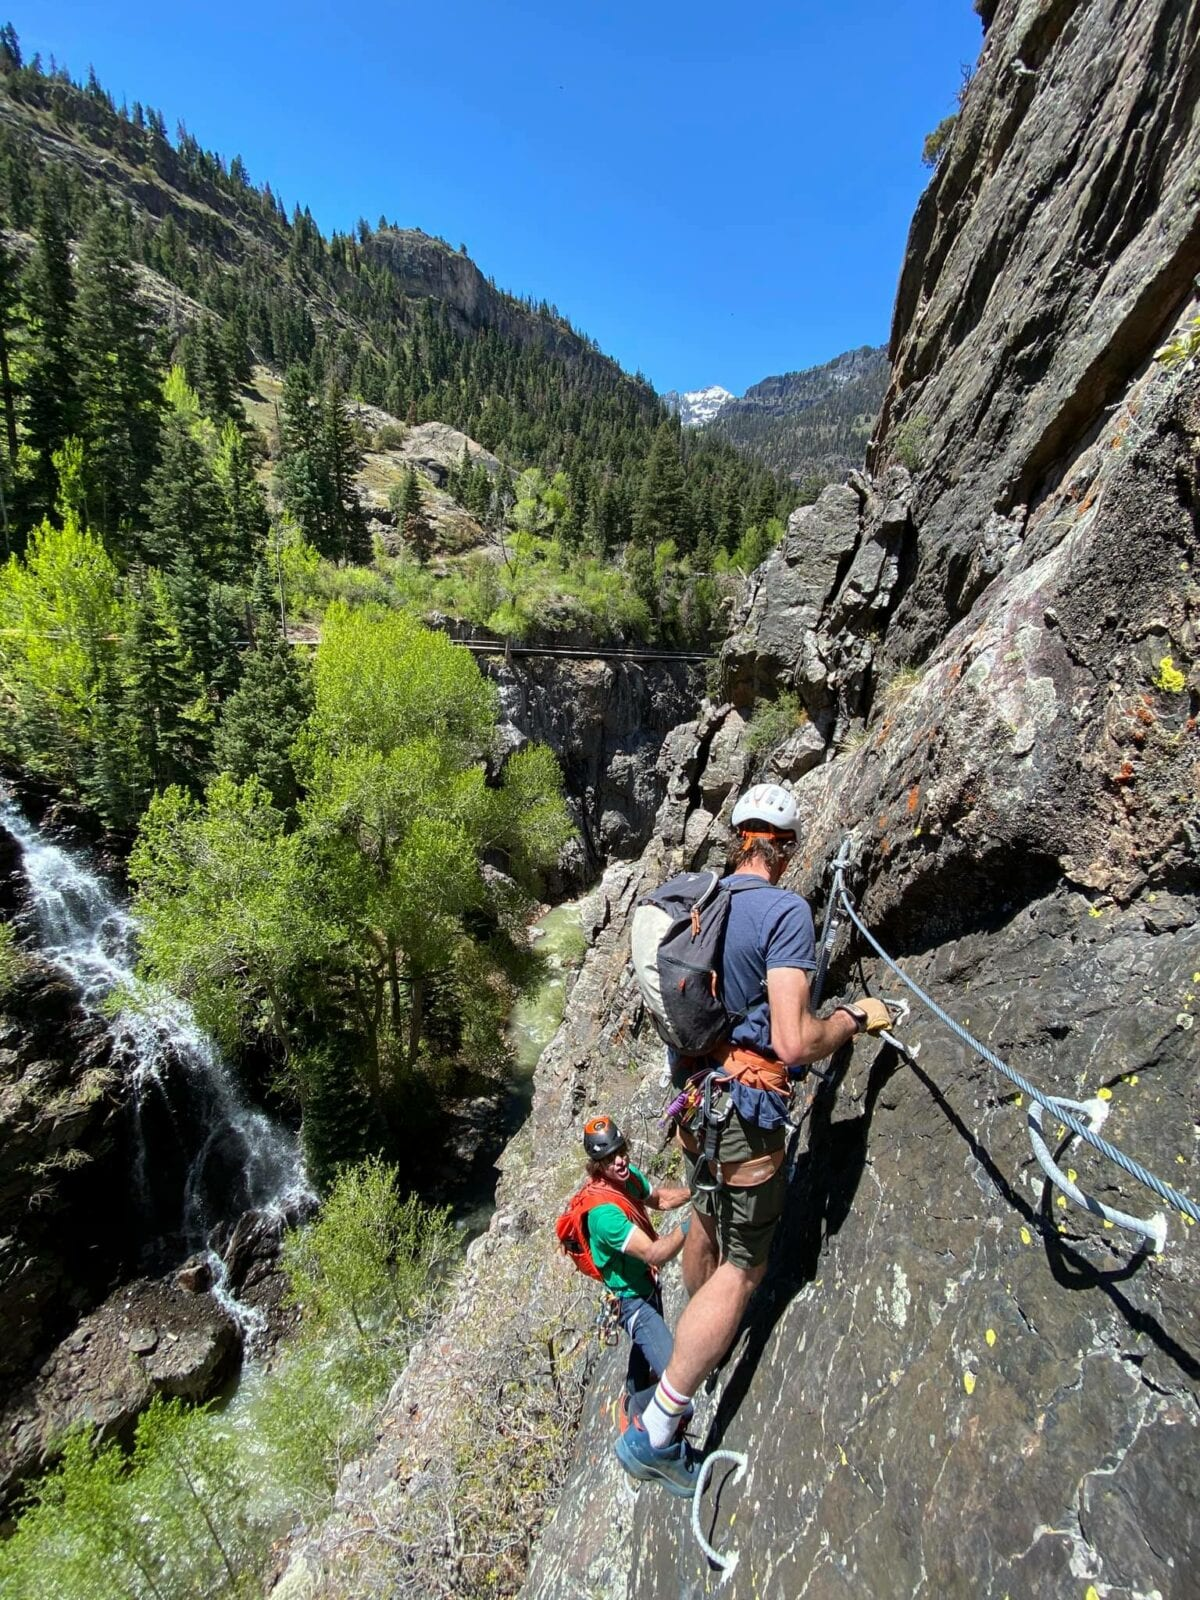 Image of climbers on the Ouray Via Ferrata in Colorado